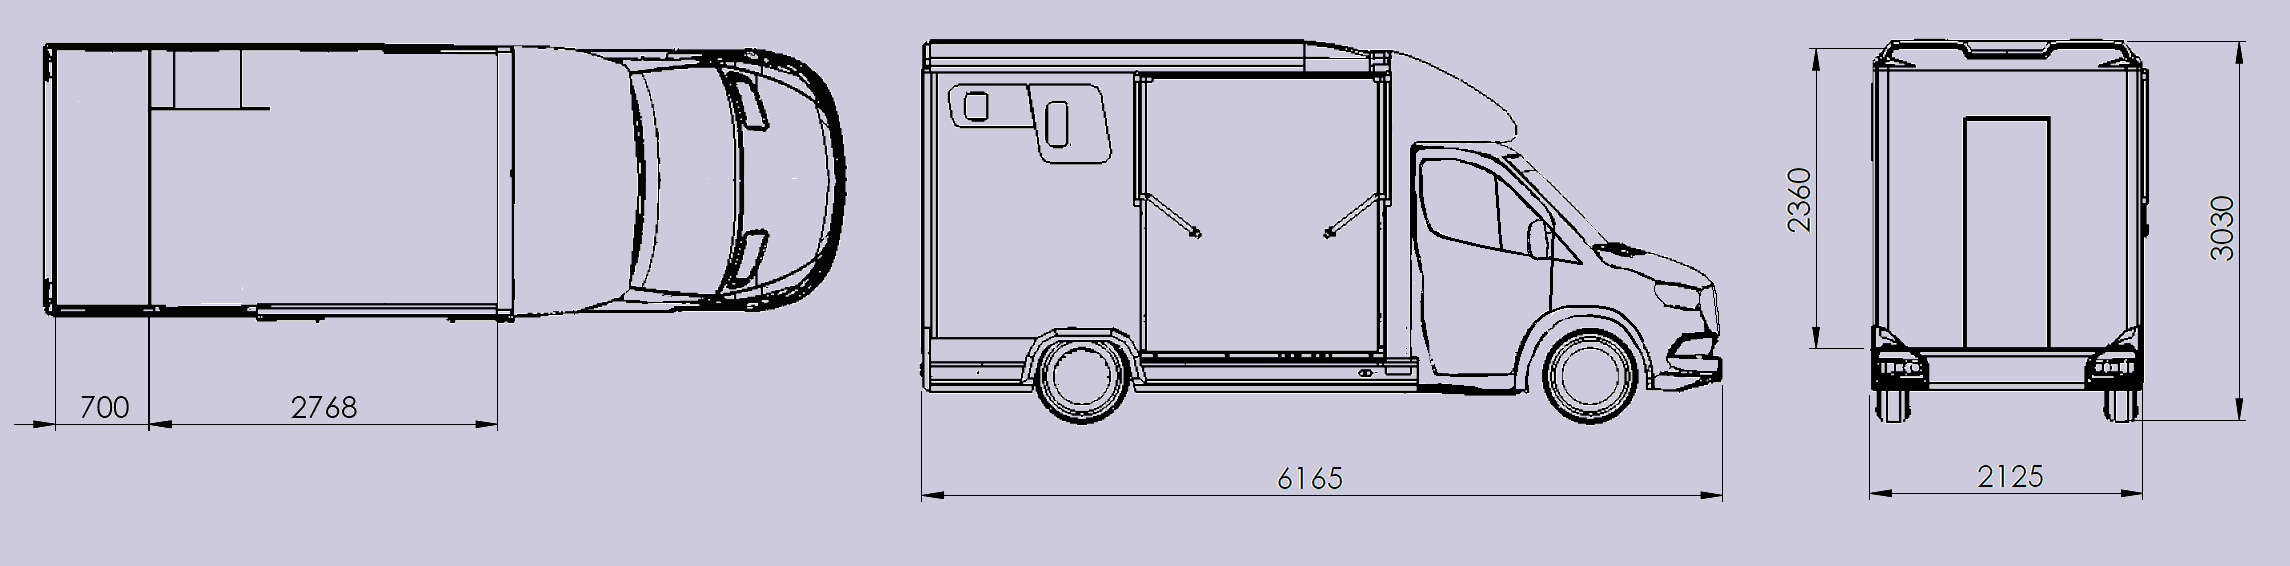 Click to view Internal Layouts, if you configure your vehicle this is part of the selection process